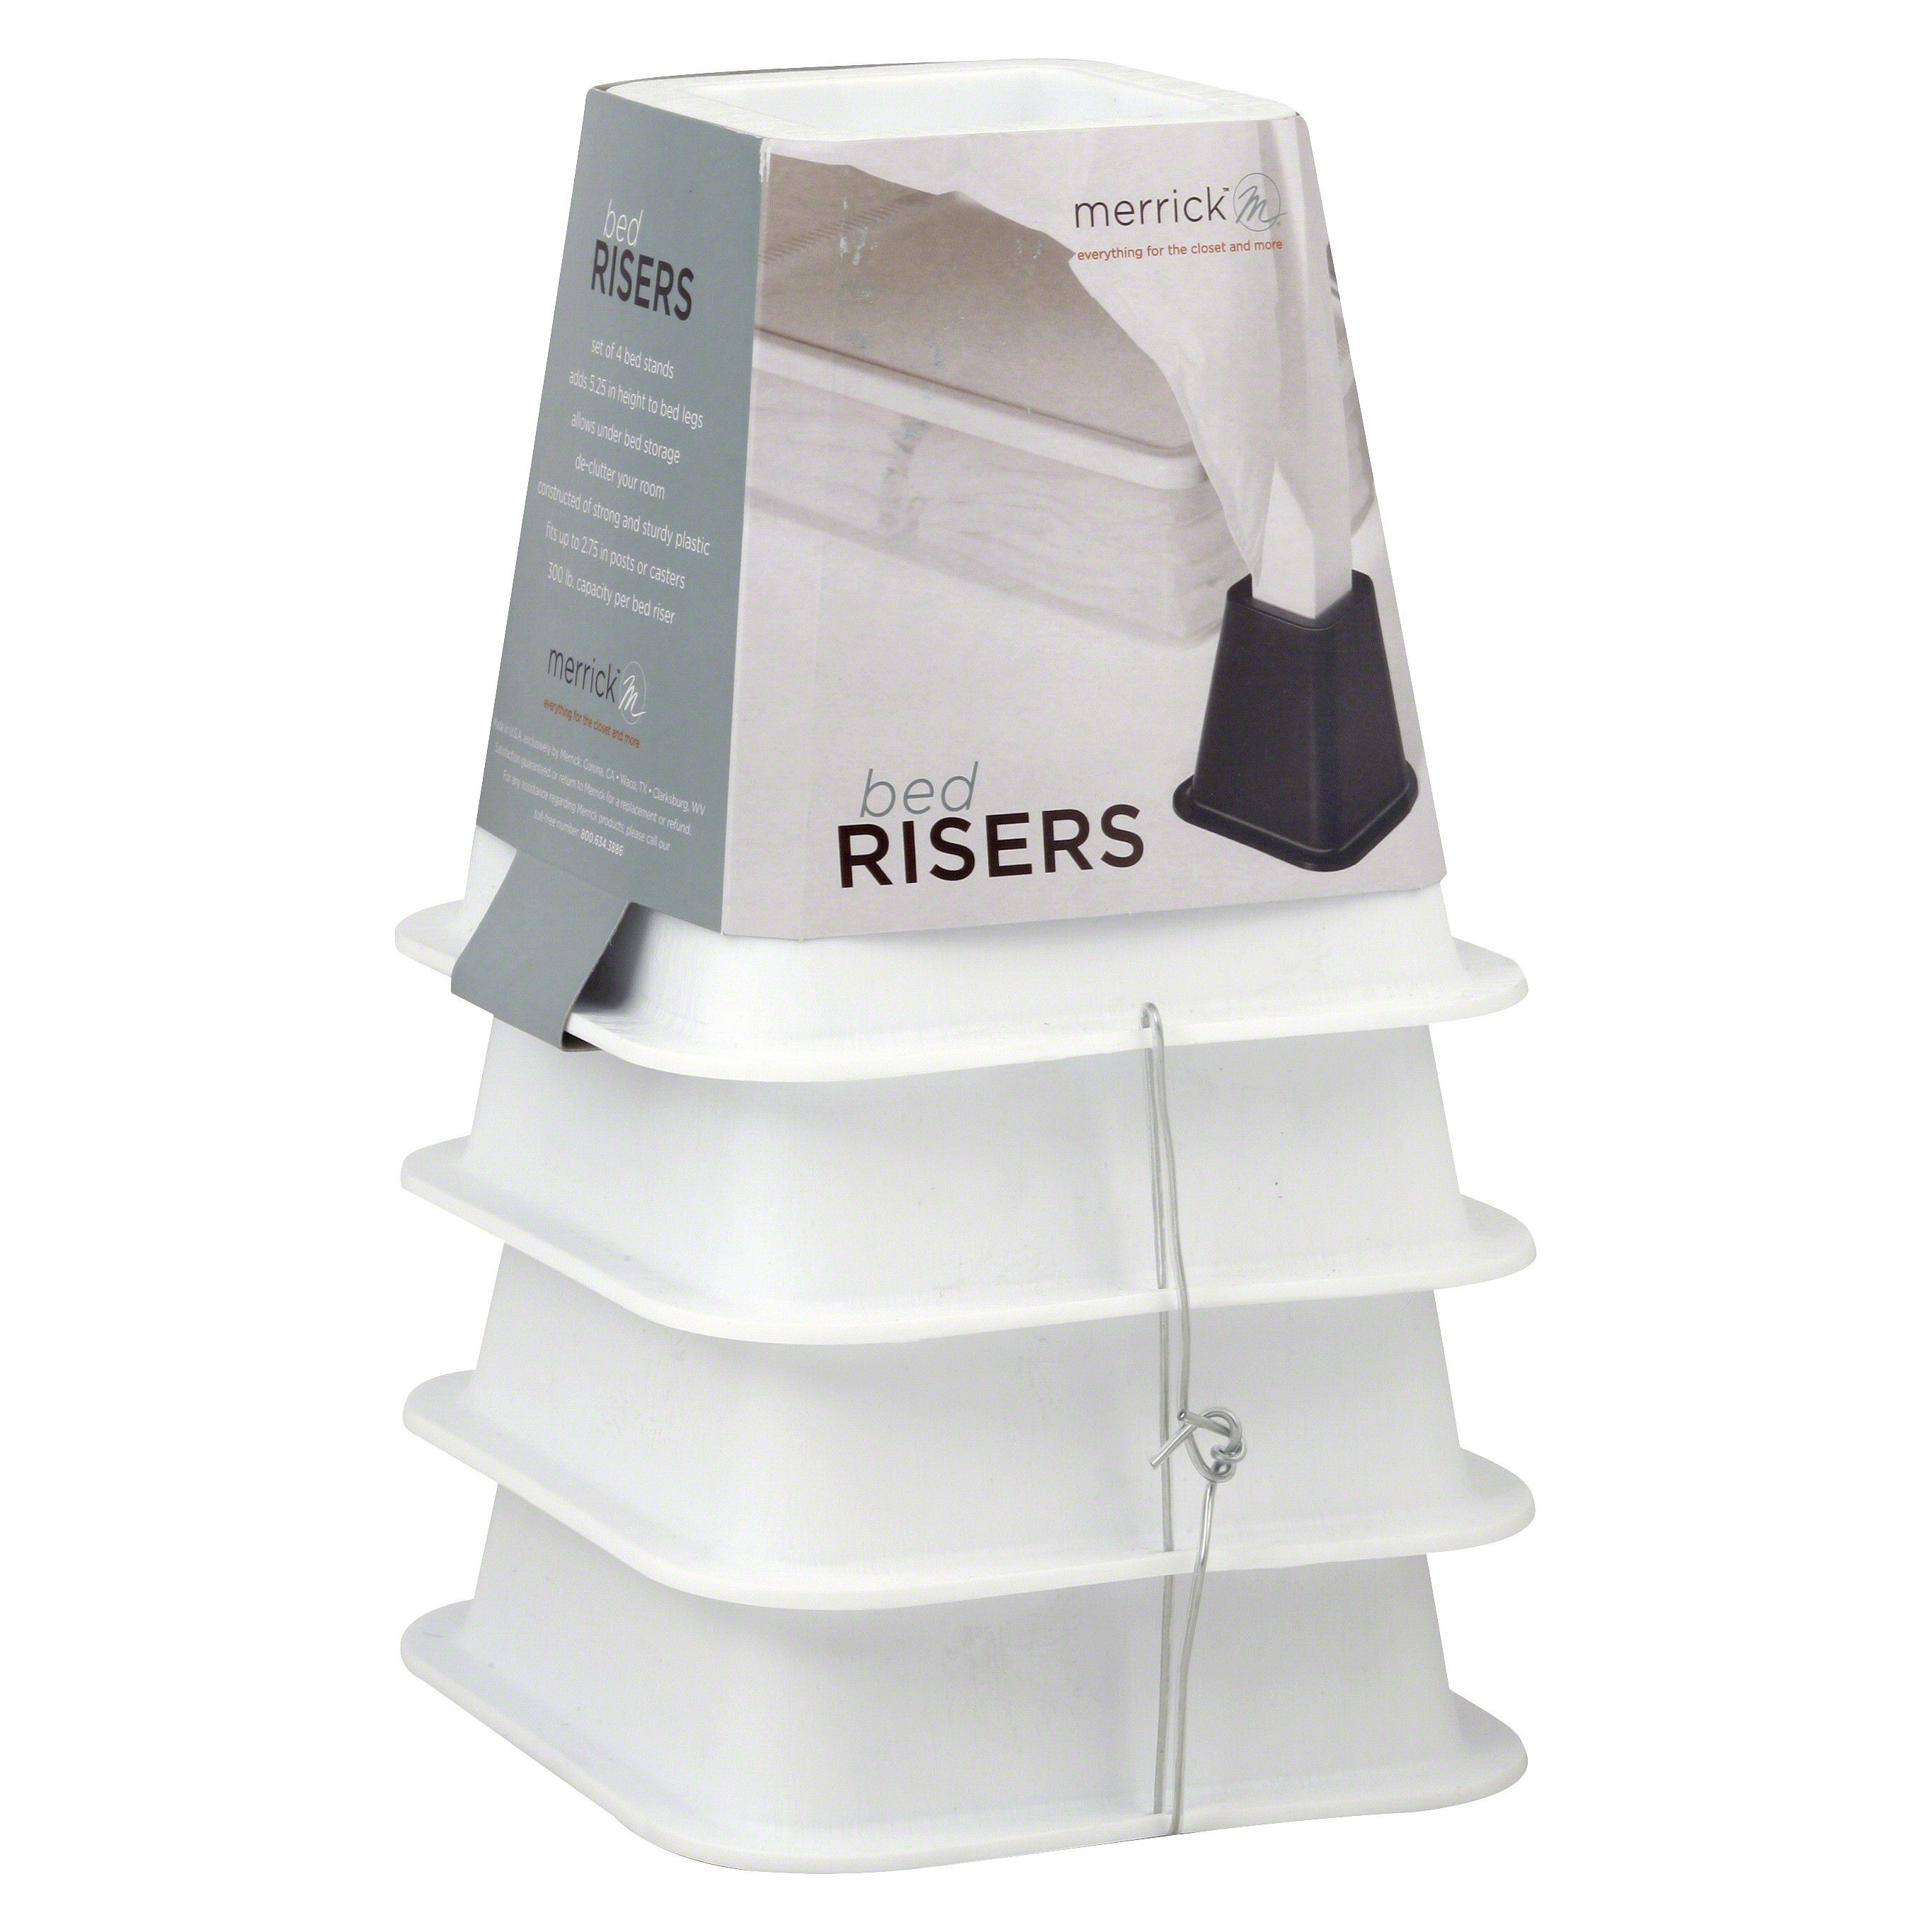 Room Essentials™ Bed Risers Set of 4 - White : Target - $6.83 | Dorm ...